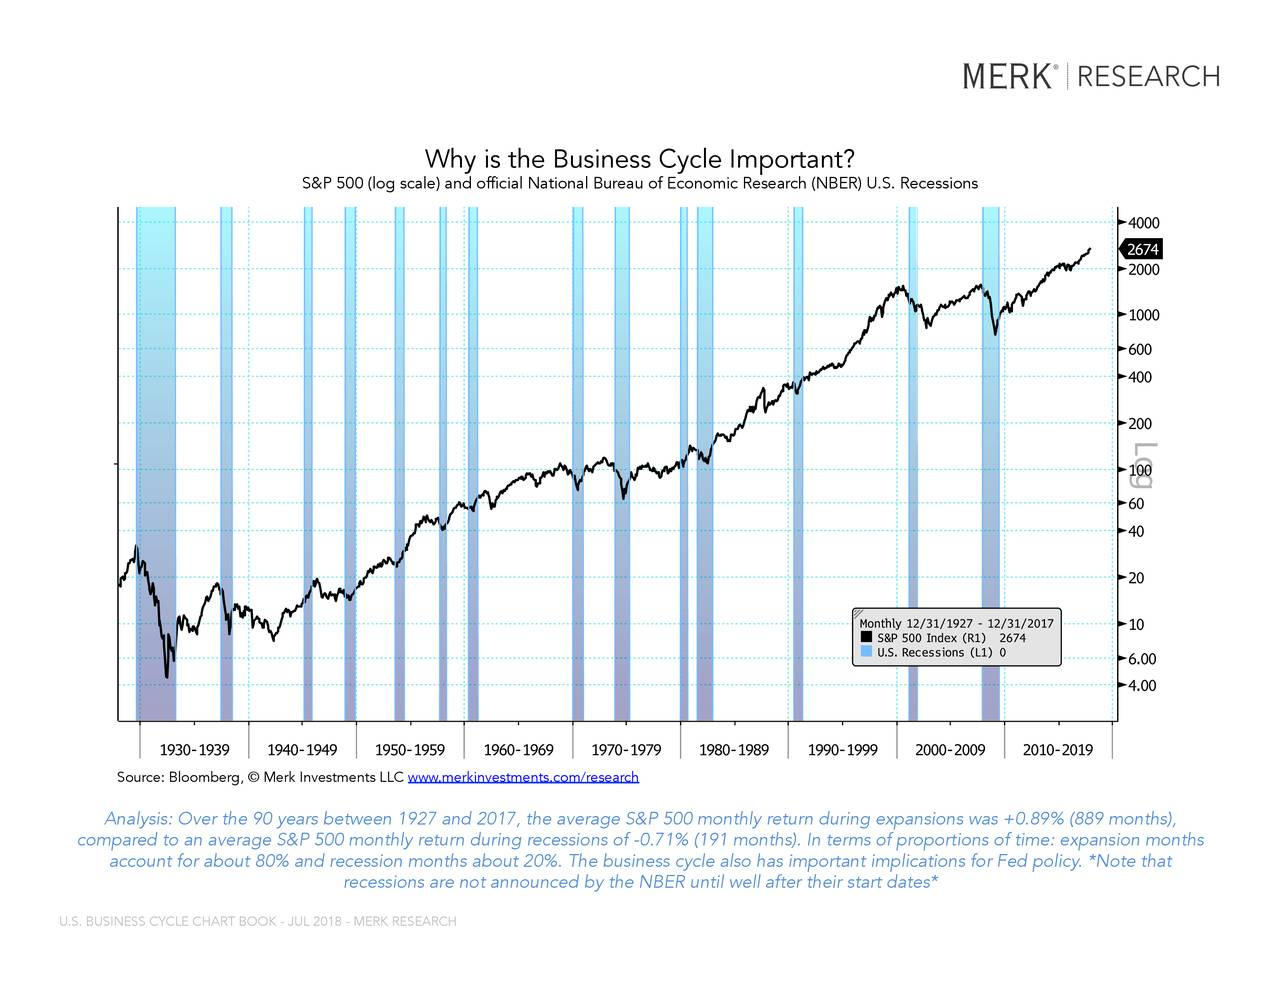 """USRINDEX Index (U.S. Recession Indicator... Why is the Business Cycle Important? S&P 500 (log scale) and official National Bureau of Economic Research (NBER) U.S. Recessions Source: Bloomberg, © Merk Investments LLC www.merkinvestments.com/research Countries""""). BFLP is a wholly-owned subsidiary of Bloomberg LP (""""BLP""""). BLP provides BFLP with all the global marketing and operational support and service for the Services and distributes the Services either directly or through a non-BFLP subsidiary in the BLP Countries. BFLP, BLP and their affiliates do not provide investment advice, and nothing herein shall constitute an offer of financial instruments by BFLP, BLP or their affiliates. Analysis: Over the 90 years between 1927 and 2017, the average S&P 500 monthly return during expansions was +0.89% (889 months), coBloomberg ®n a04/06/2018 21:00:21hly return during recessions of -0.71% (191 months). In terms of proportions of time: expansion months 1 account for about 80% and recession months about 20%. The business cycle also has important implications for Fed policy. *Note that recessions are not announced by the NBER until well after their start dates* U.S. BUSINESS CYCLE CHART BOOK - JUL 2018 - MERK RESEARCH"""